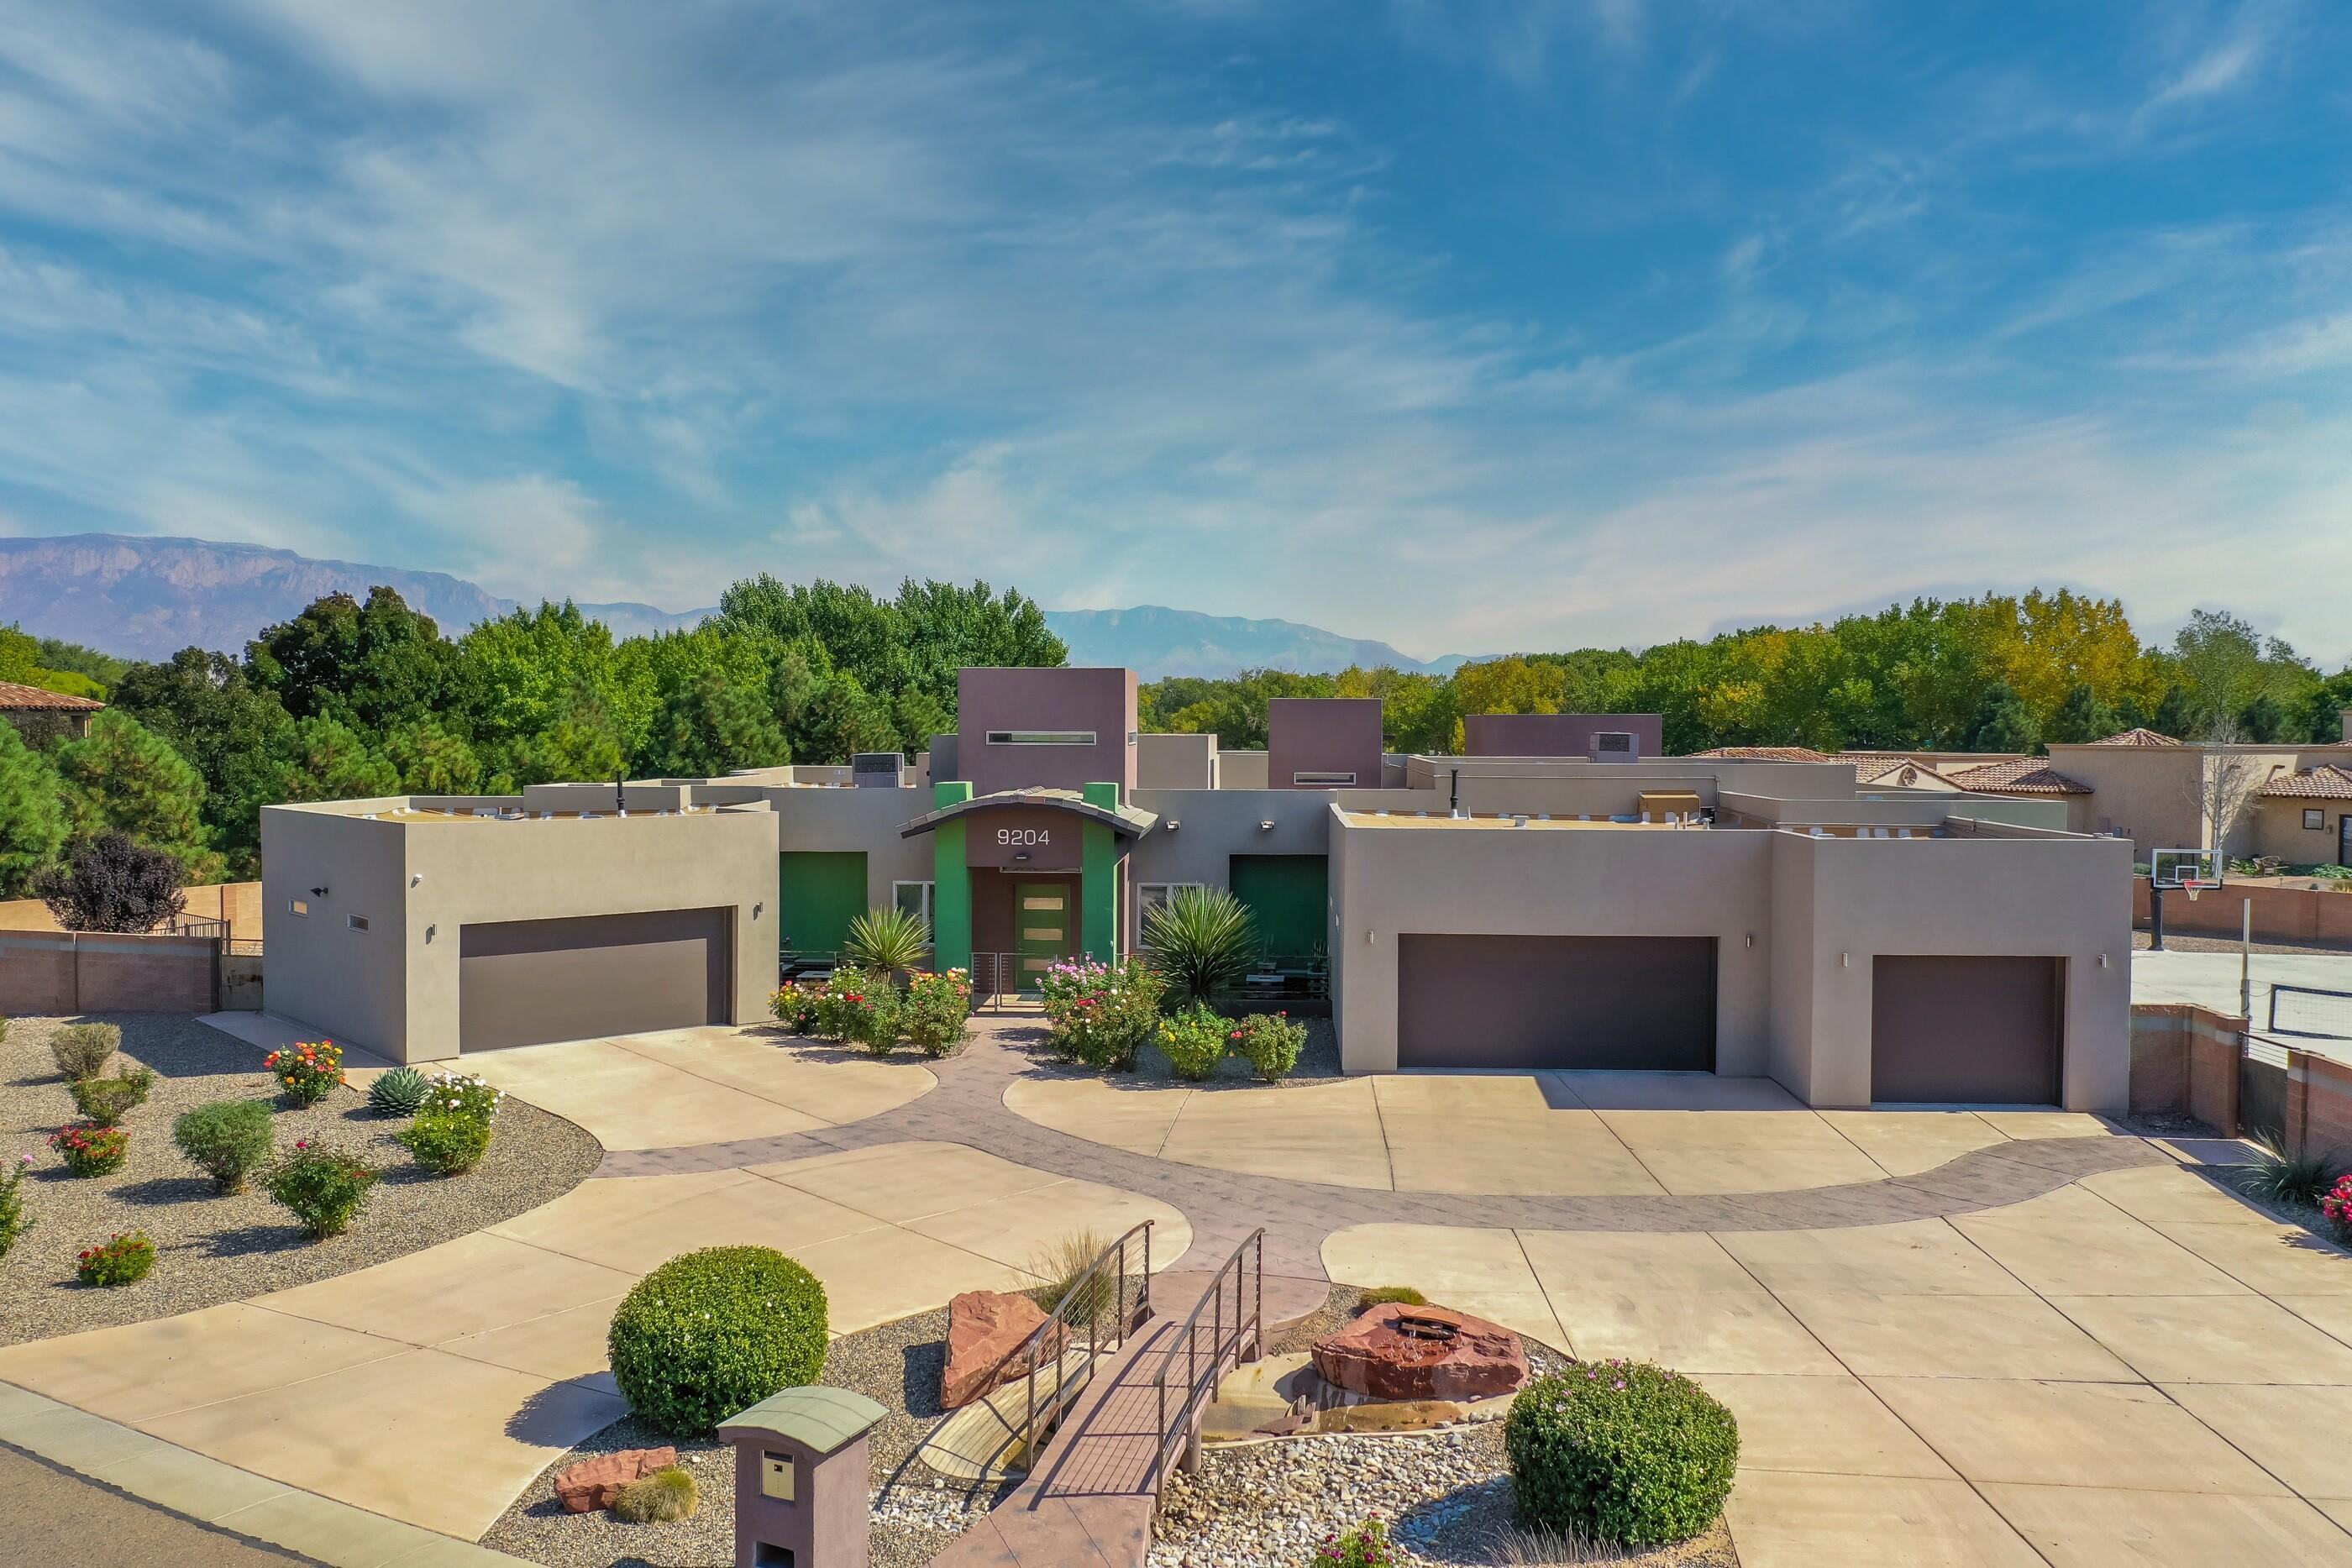 9204 BLACK FARM LANE NW, ALBUQUERQUE, NM 87114